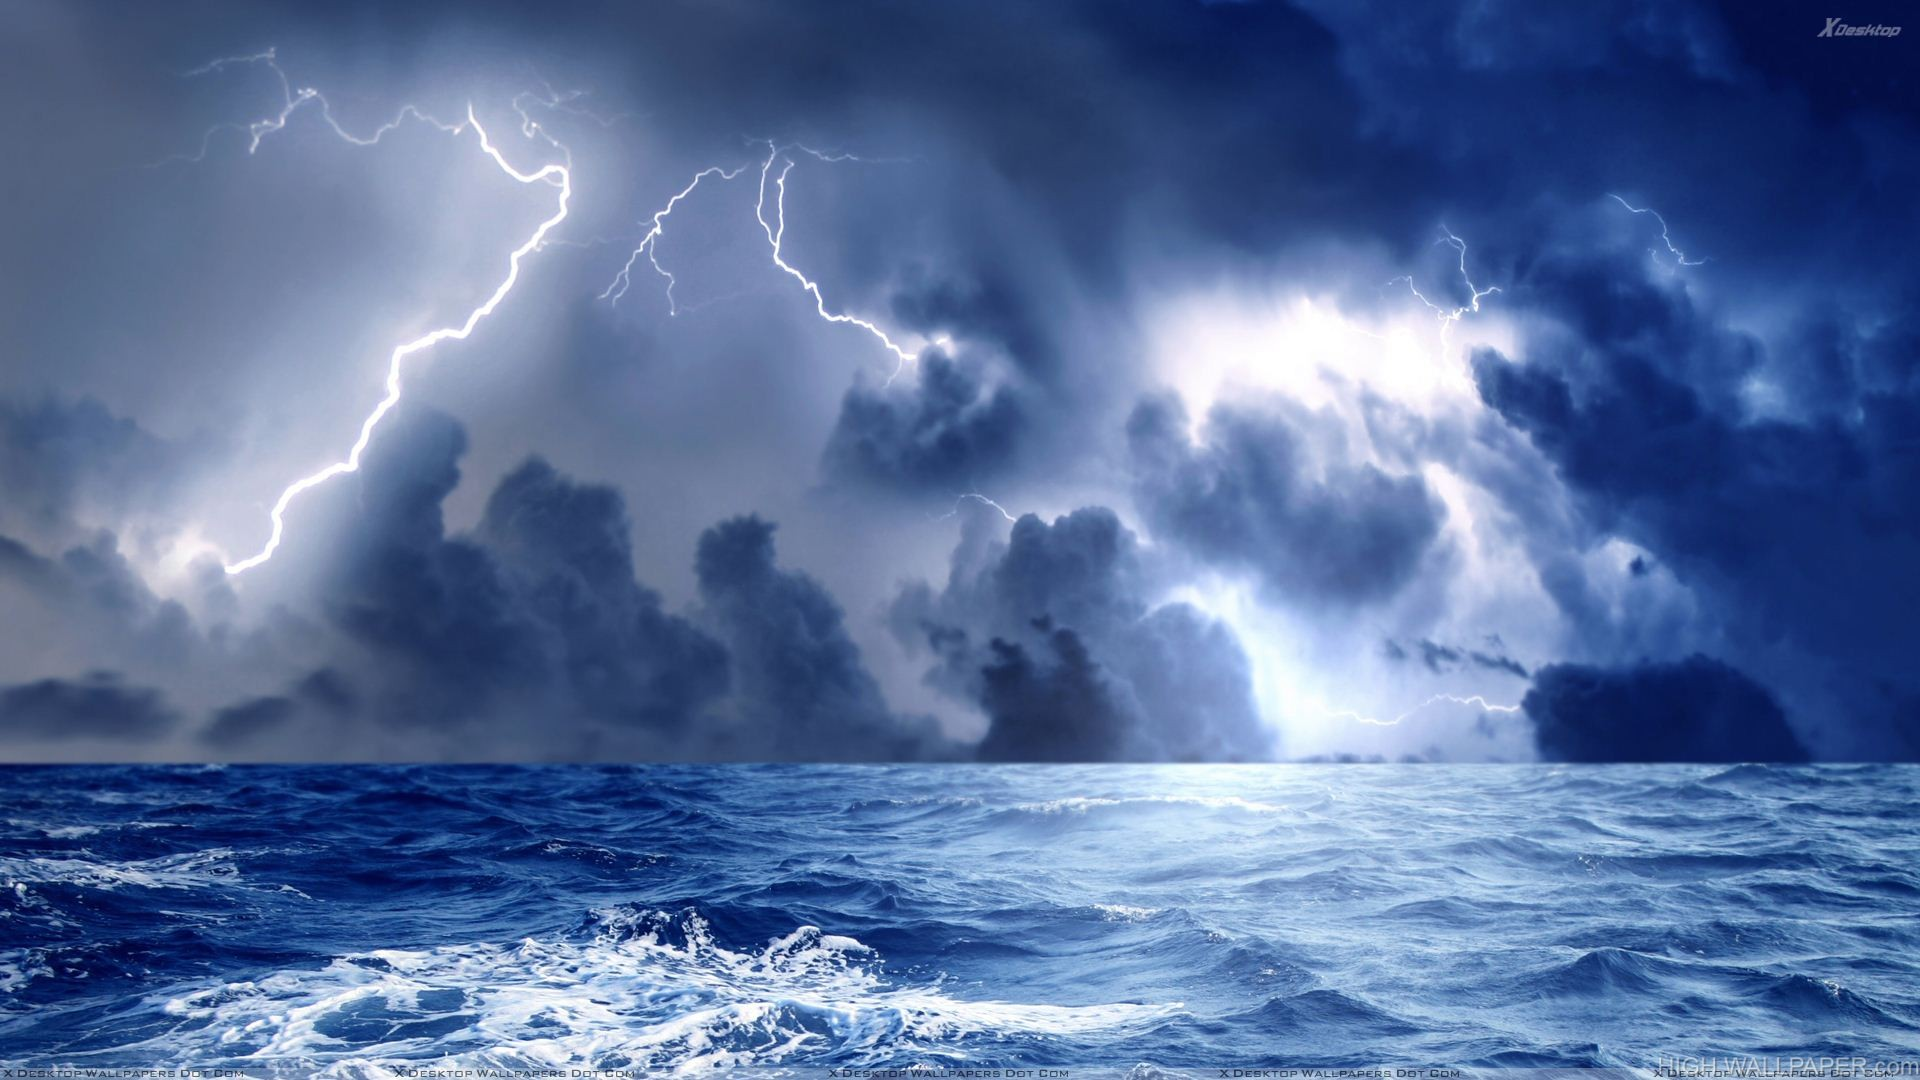 Storm And Blue Lightining At Sea